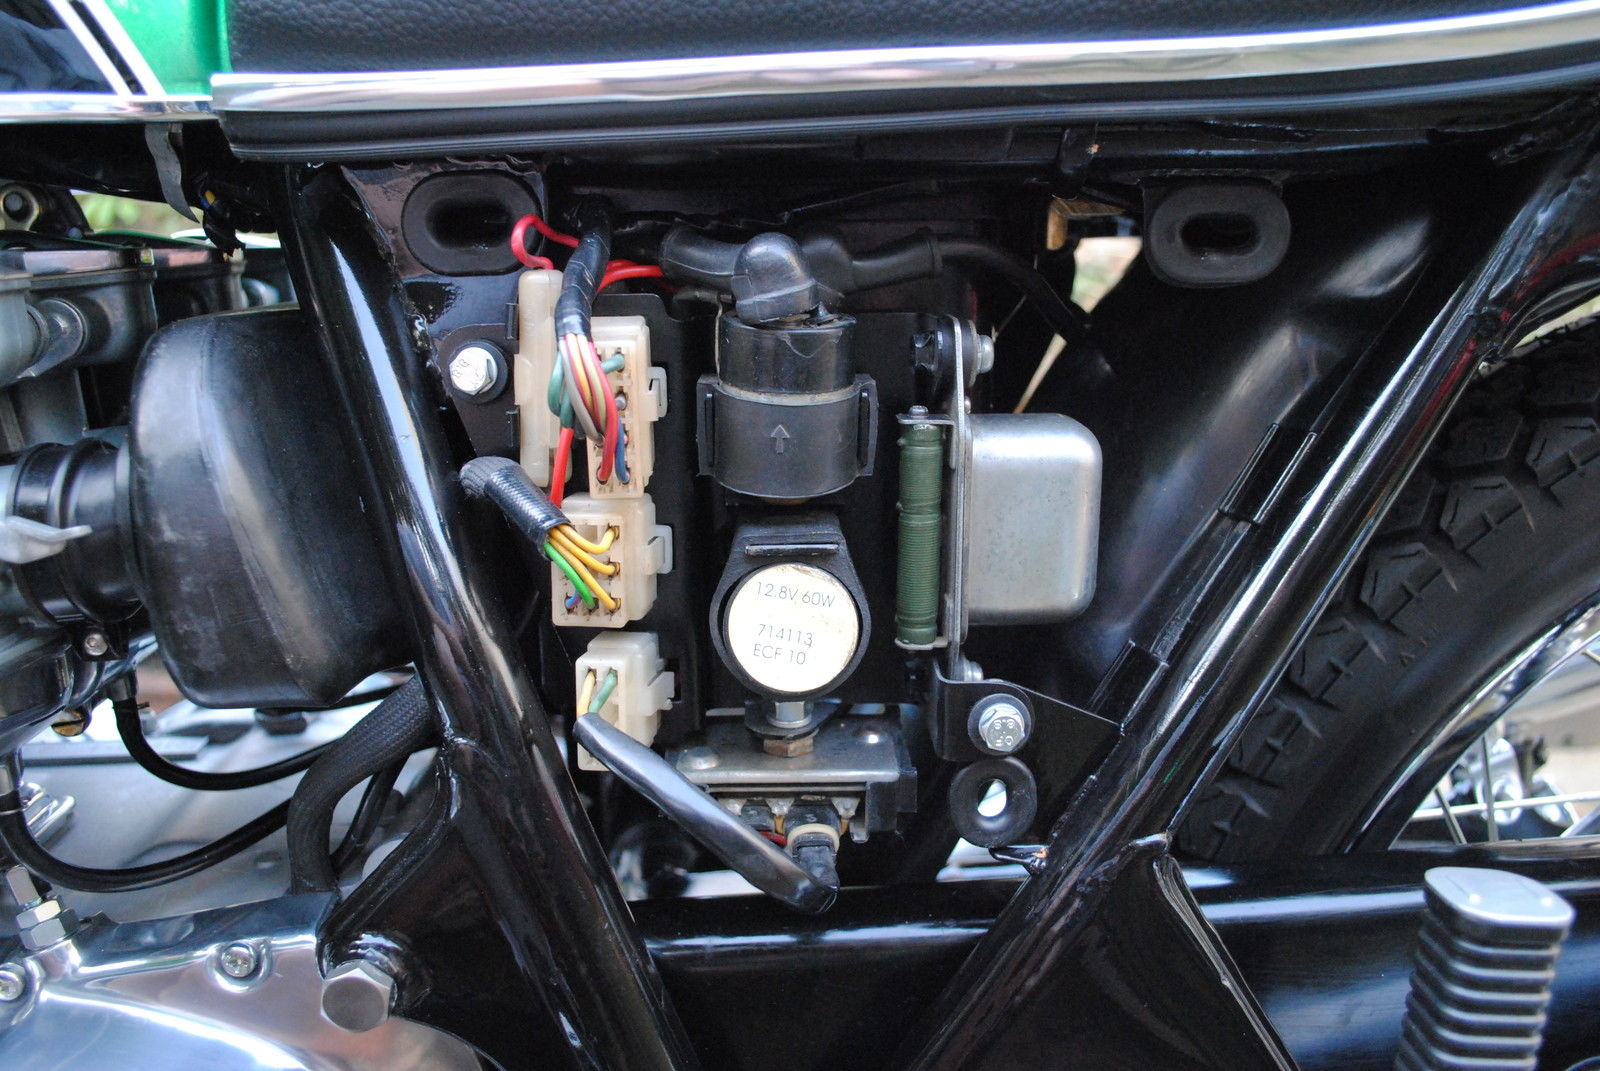 Honda CB500 Four - 1972 - Electrics, Wiring, Starter Relay, Regulator and  Rectifier .